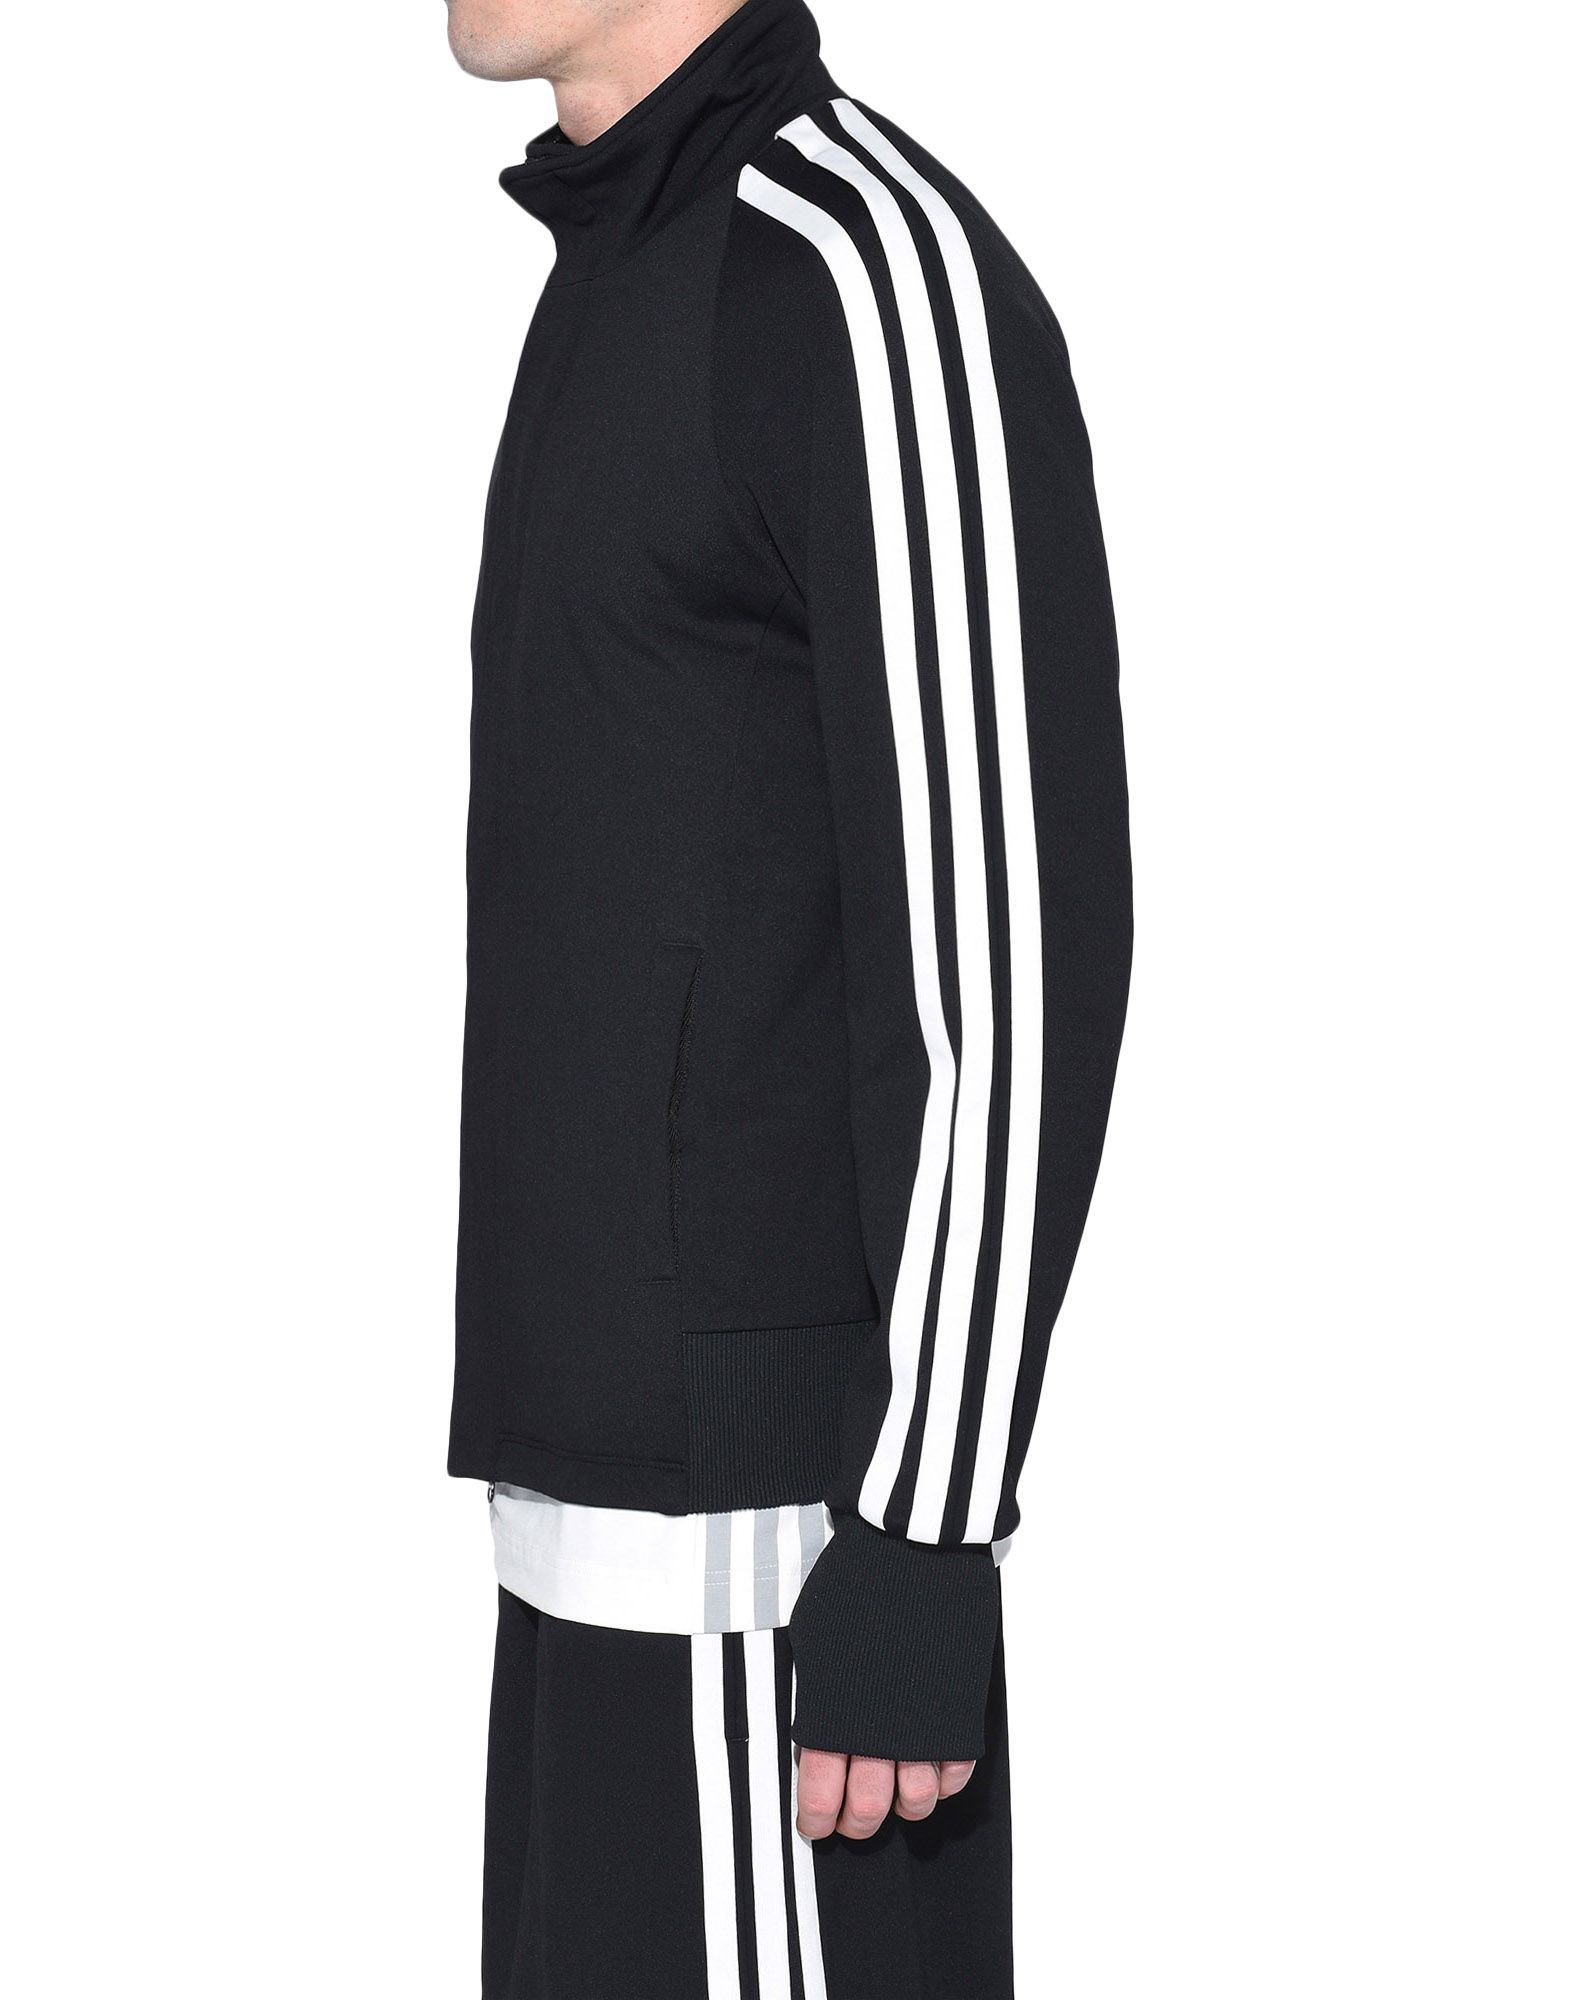 Y-3 Y-3 3-Stripes Selvedge Matte Track Jacket Track top Man e